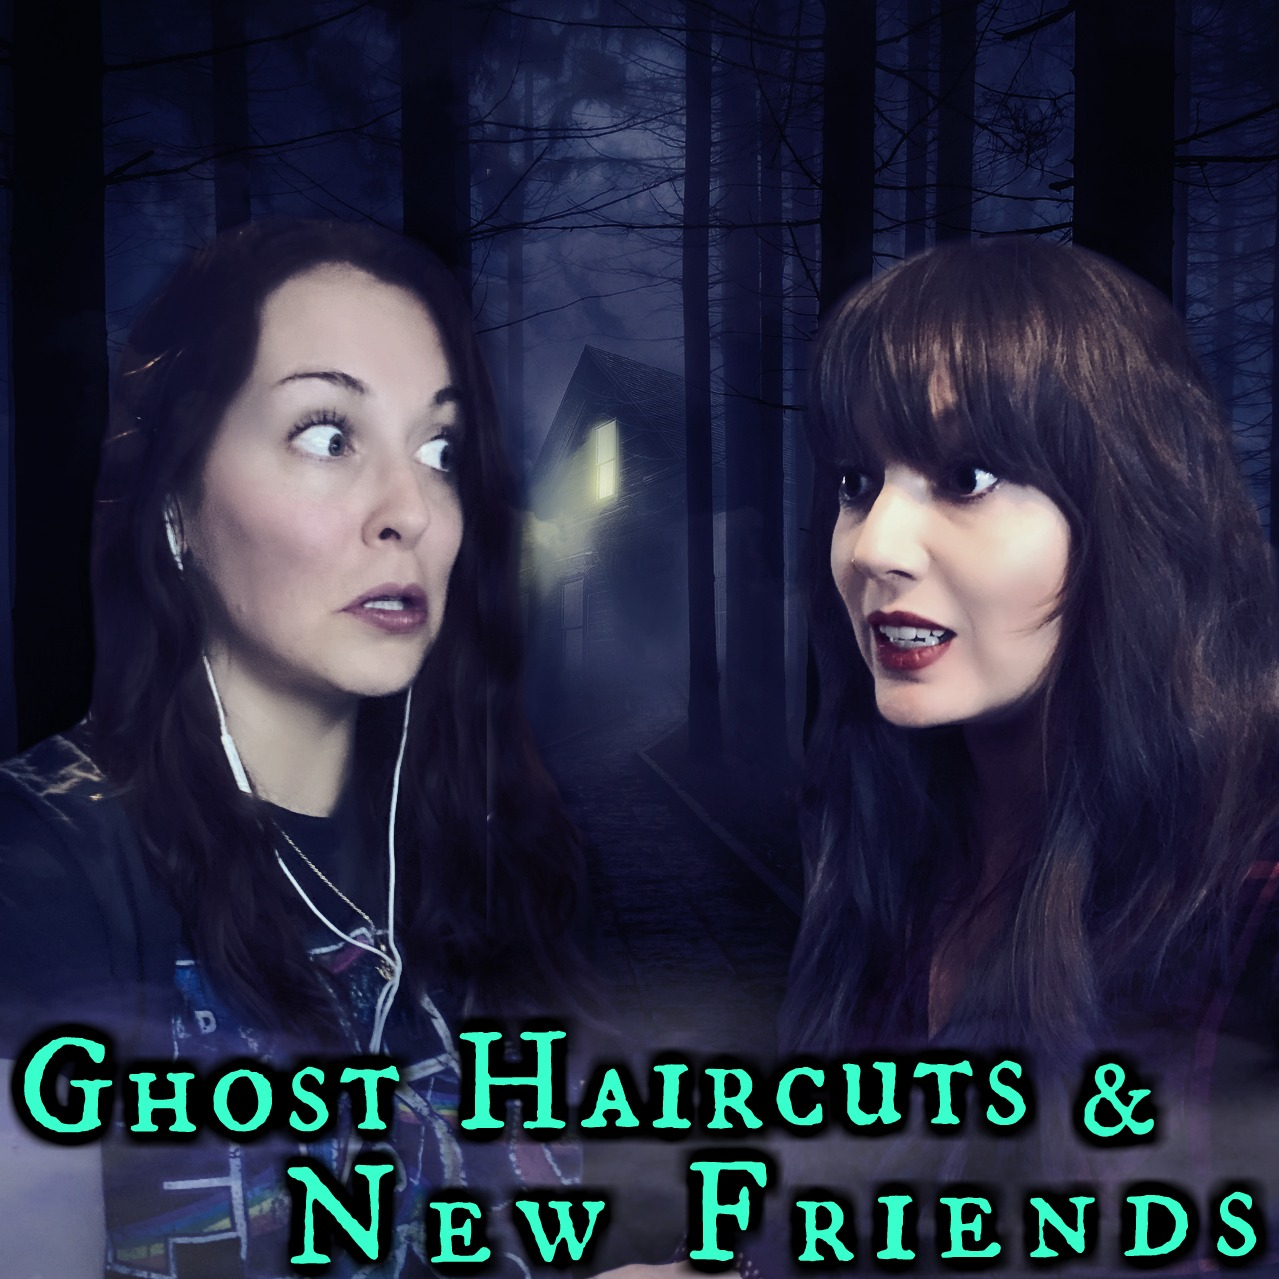 Ghost Haircuts & New Friends